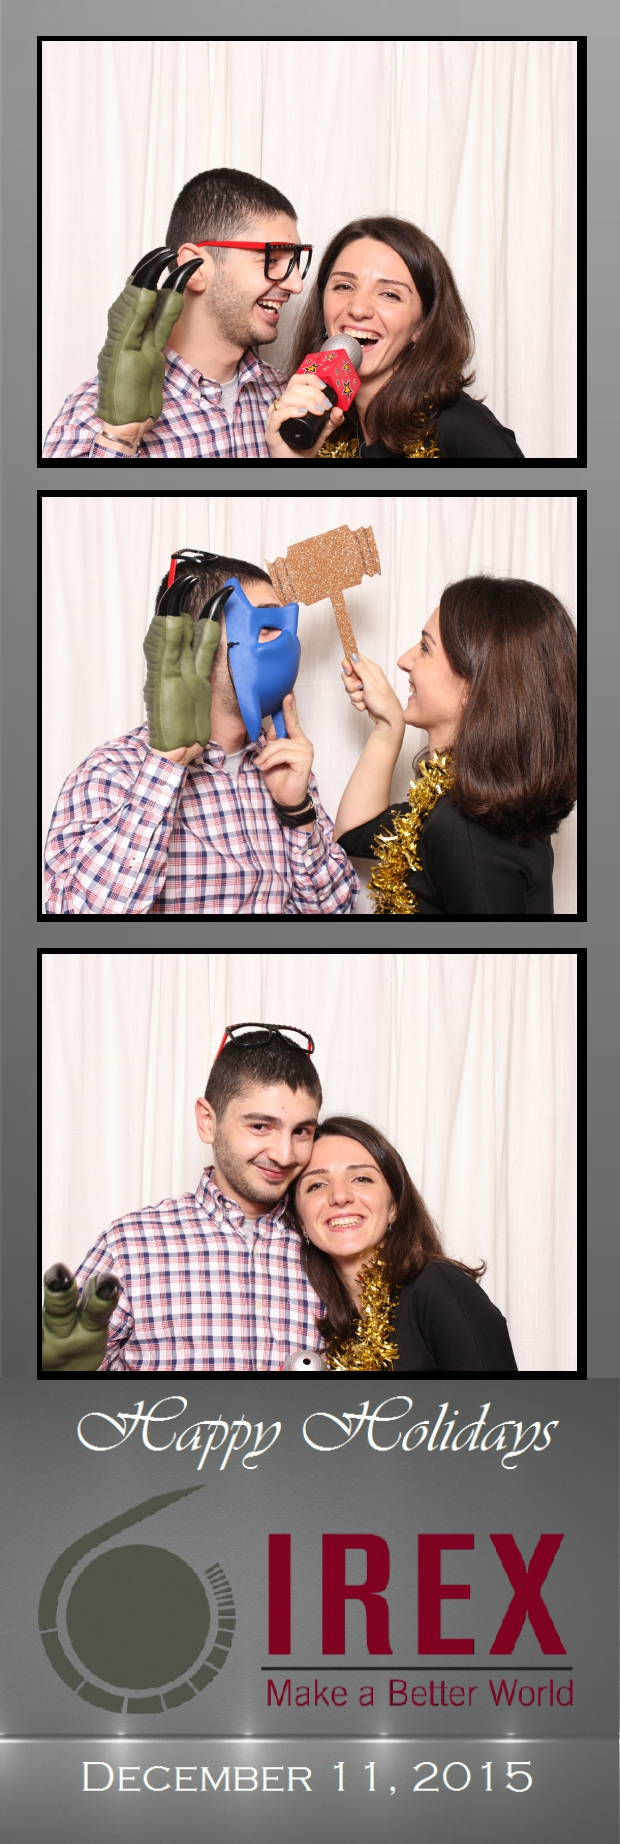 Guest House Events Photo Booth Strips IREX (69).jpg